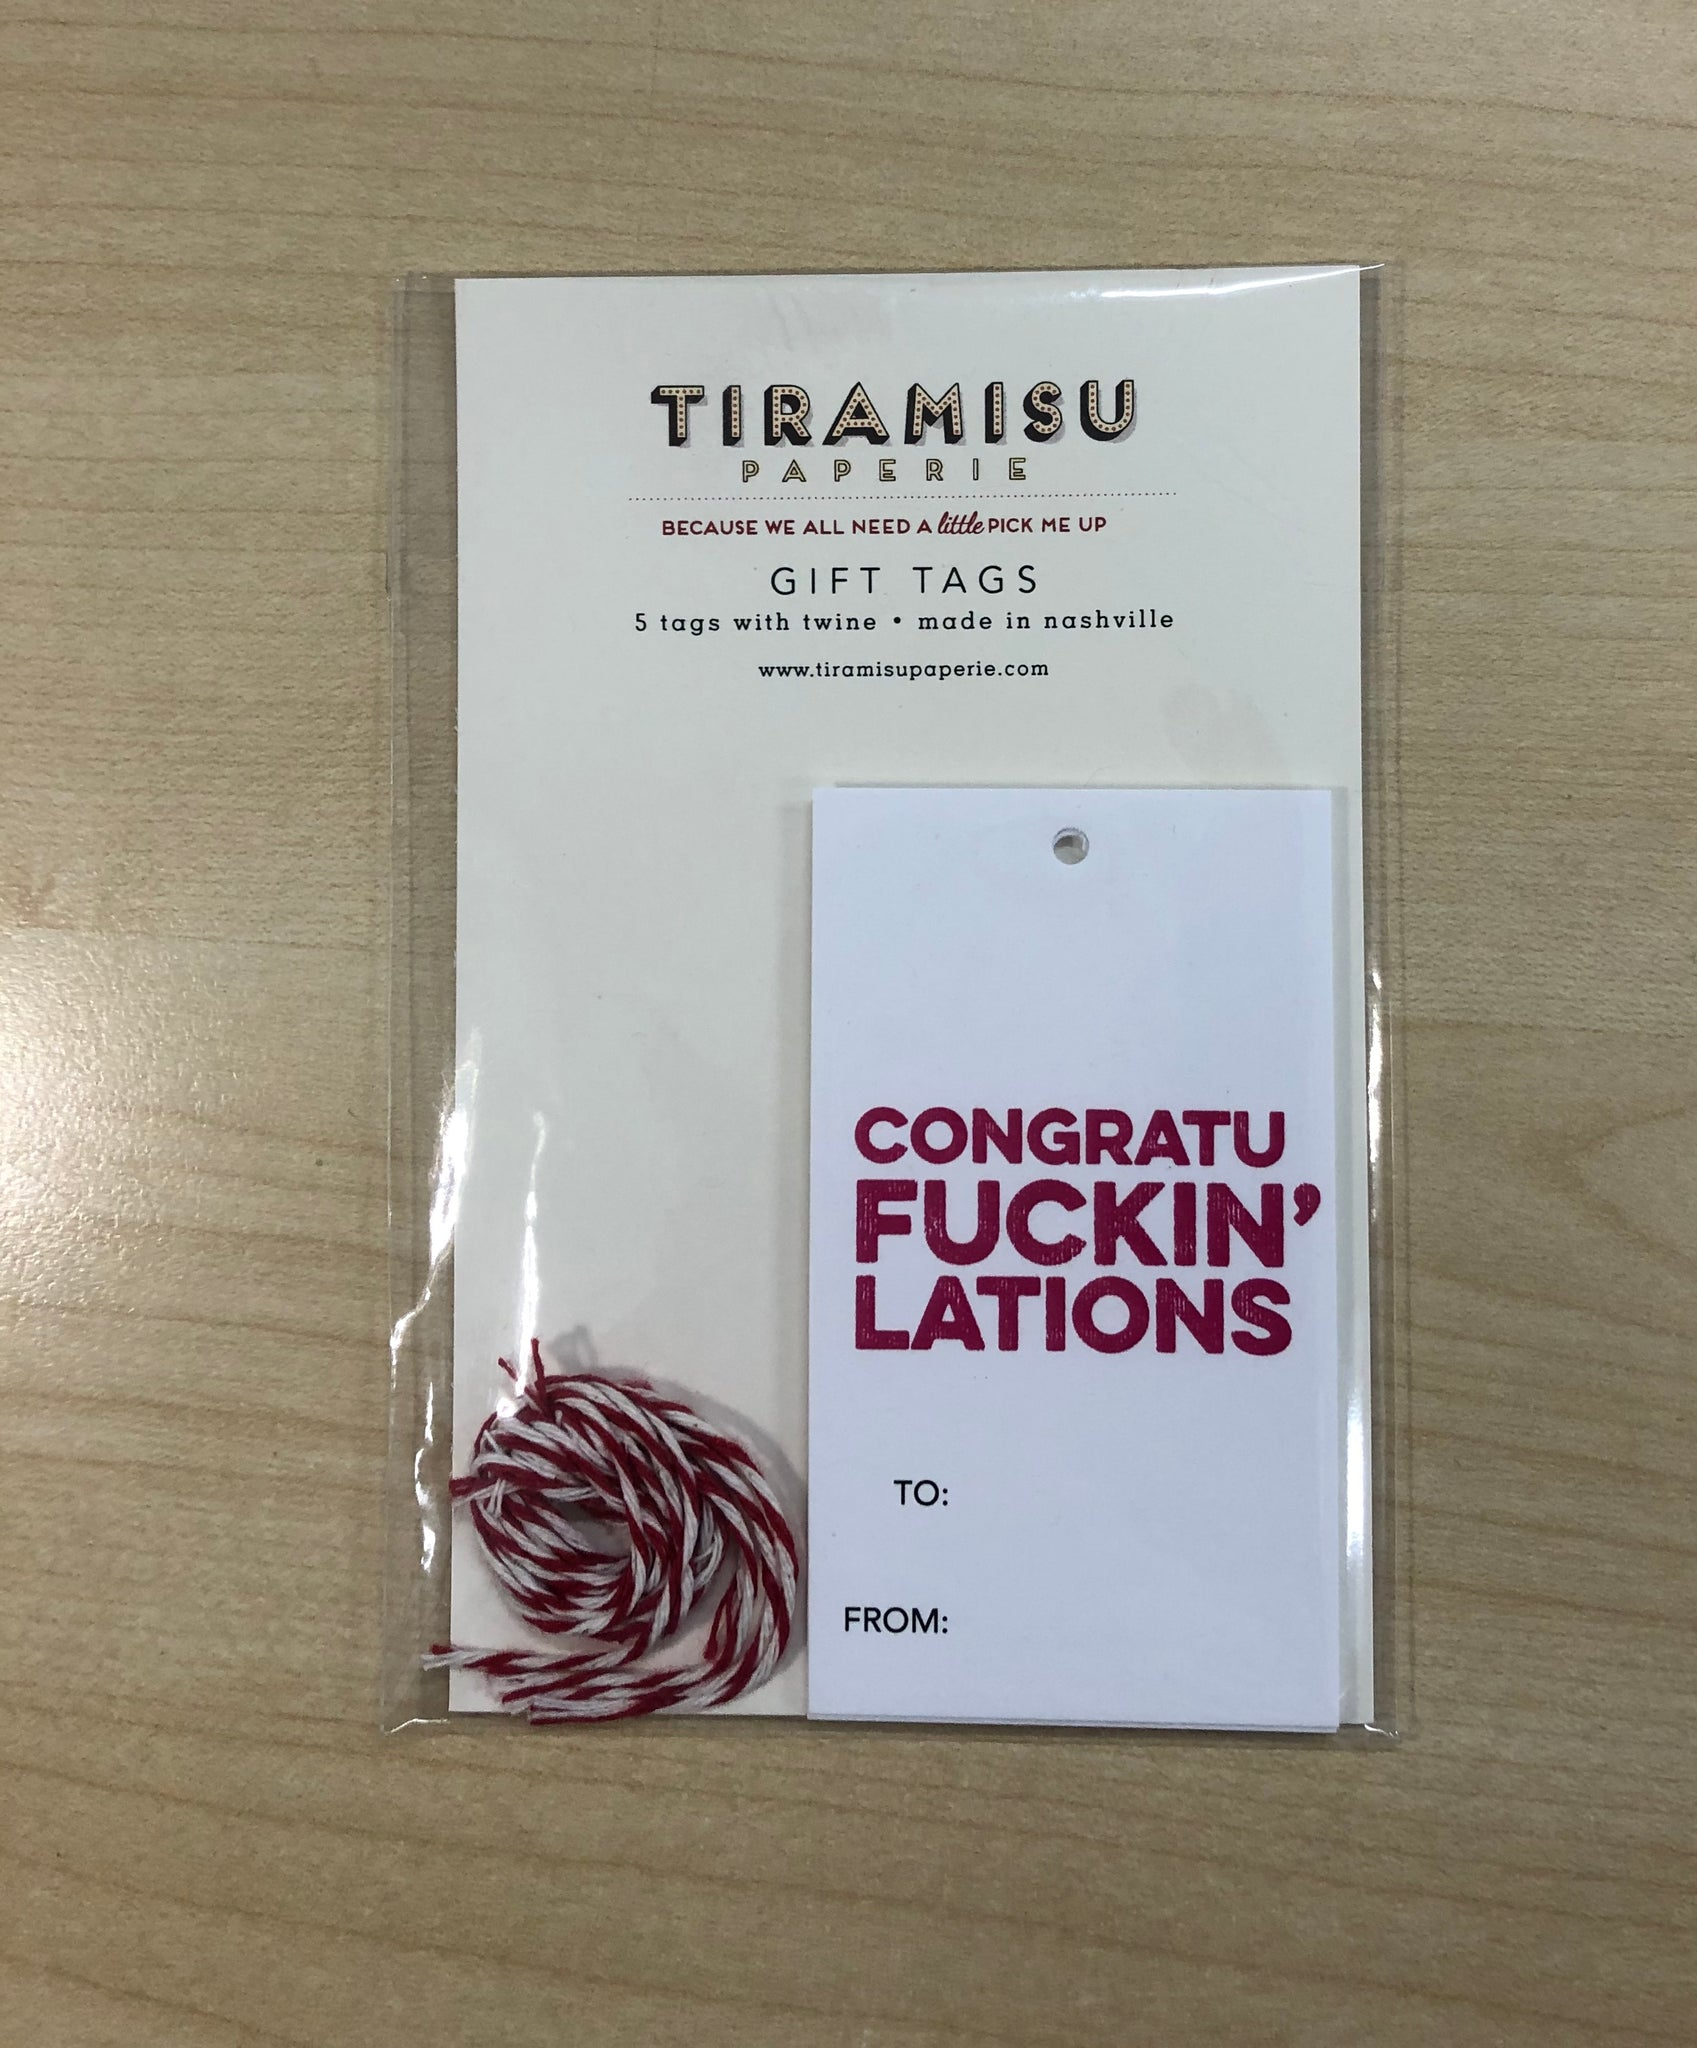 Congratufuckin'lations Gift Tags